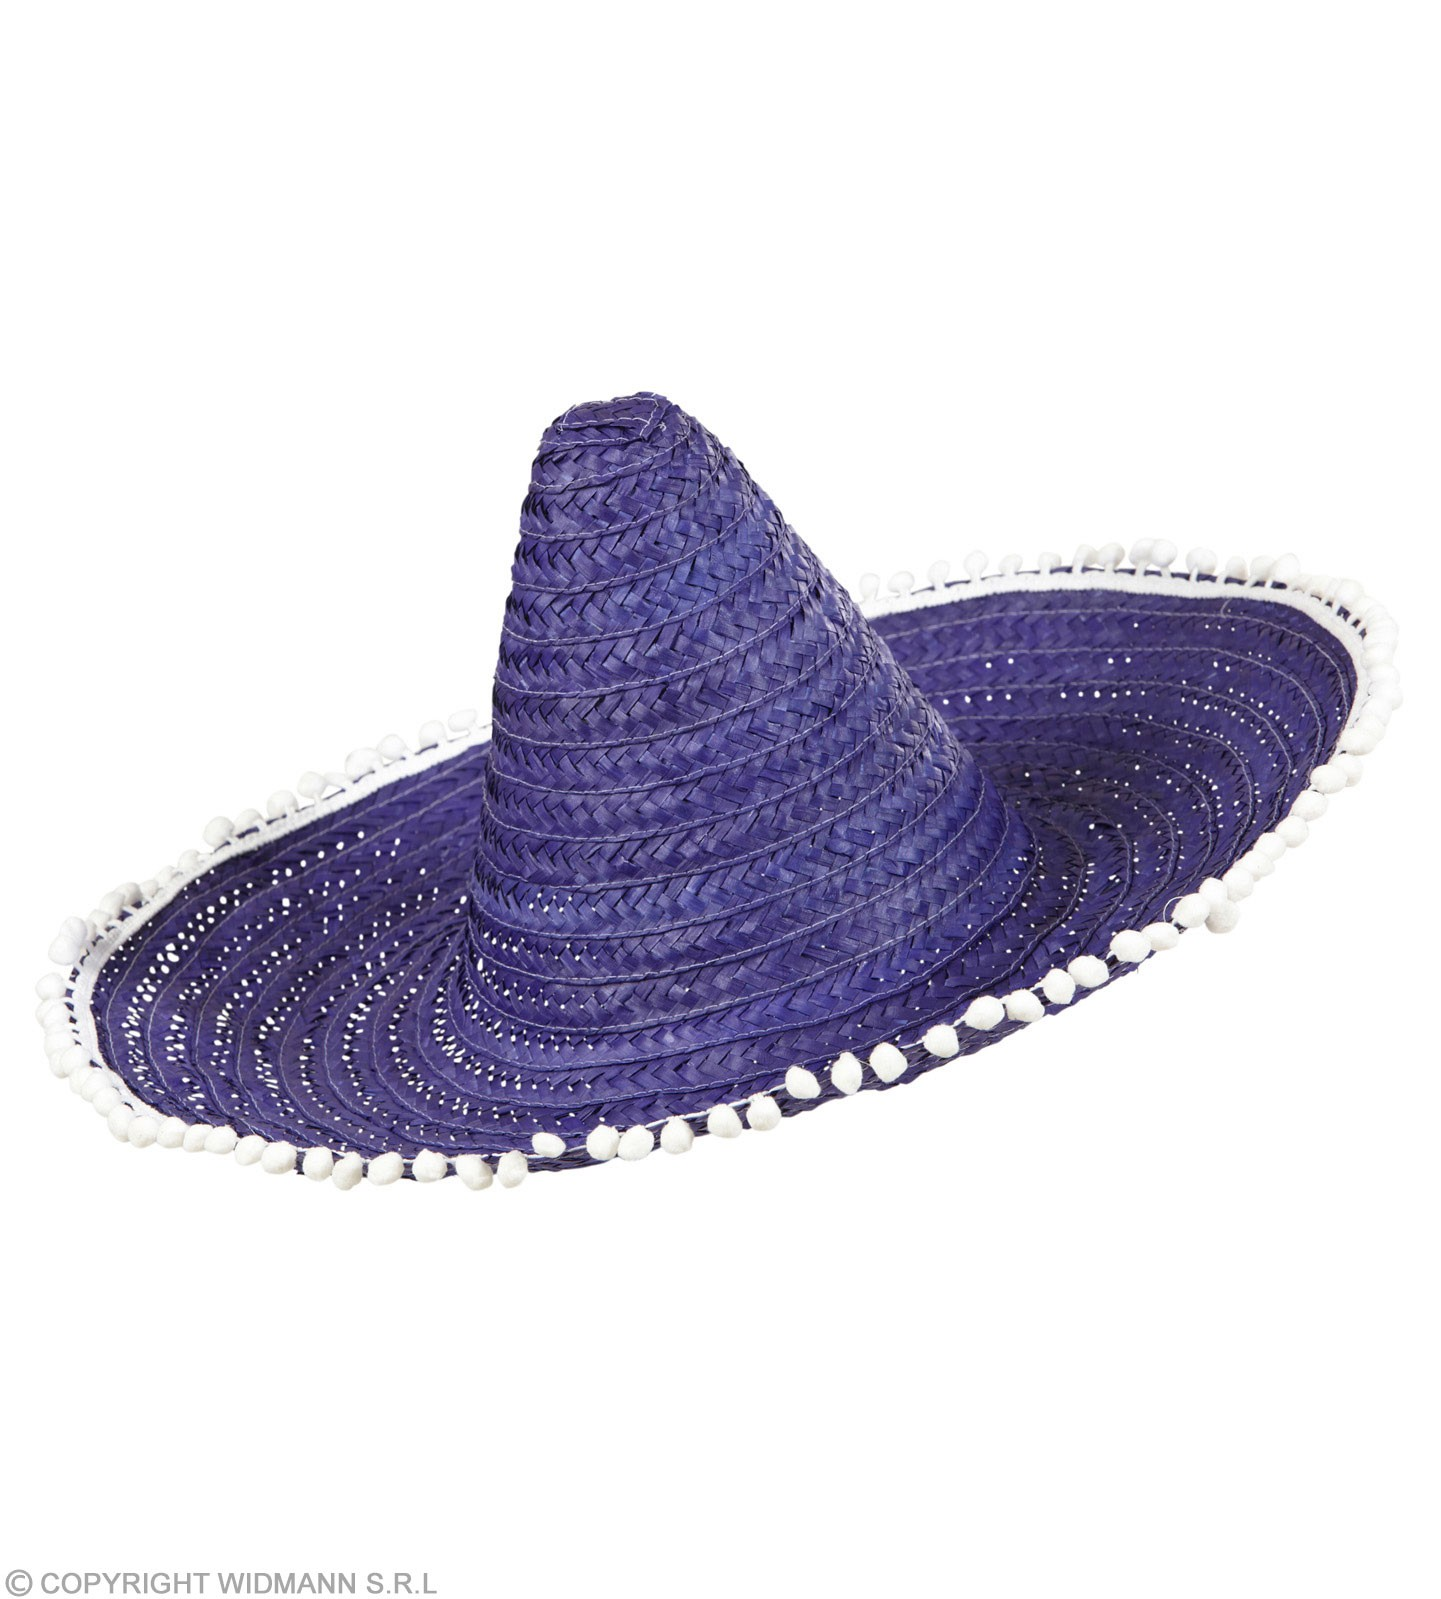 Boys Sombrero W/Pom Poms 50Cm - Blue/Purple Hats - (Blue, Purple)